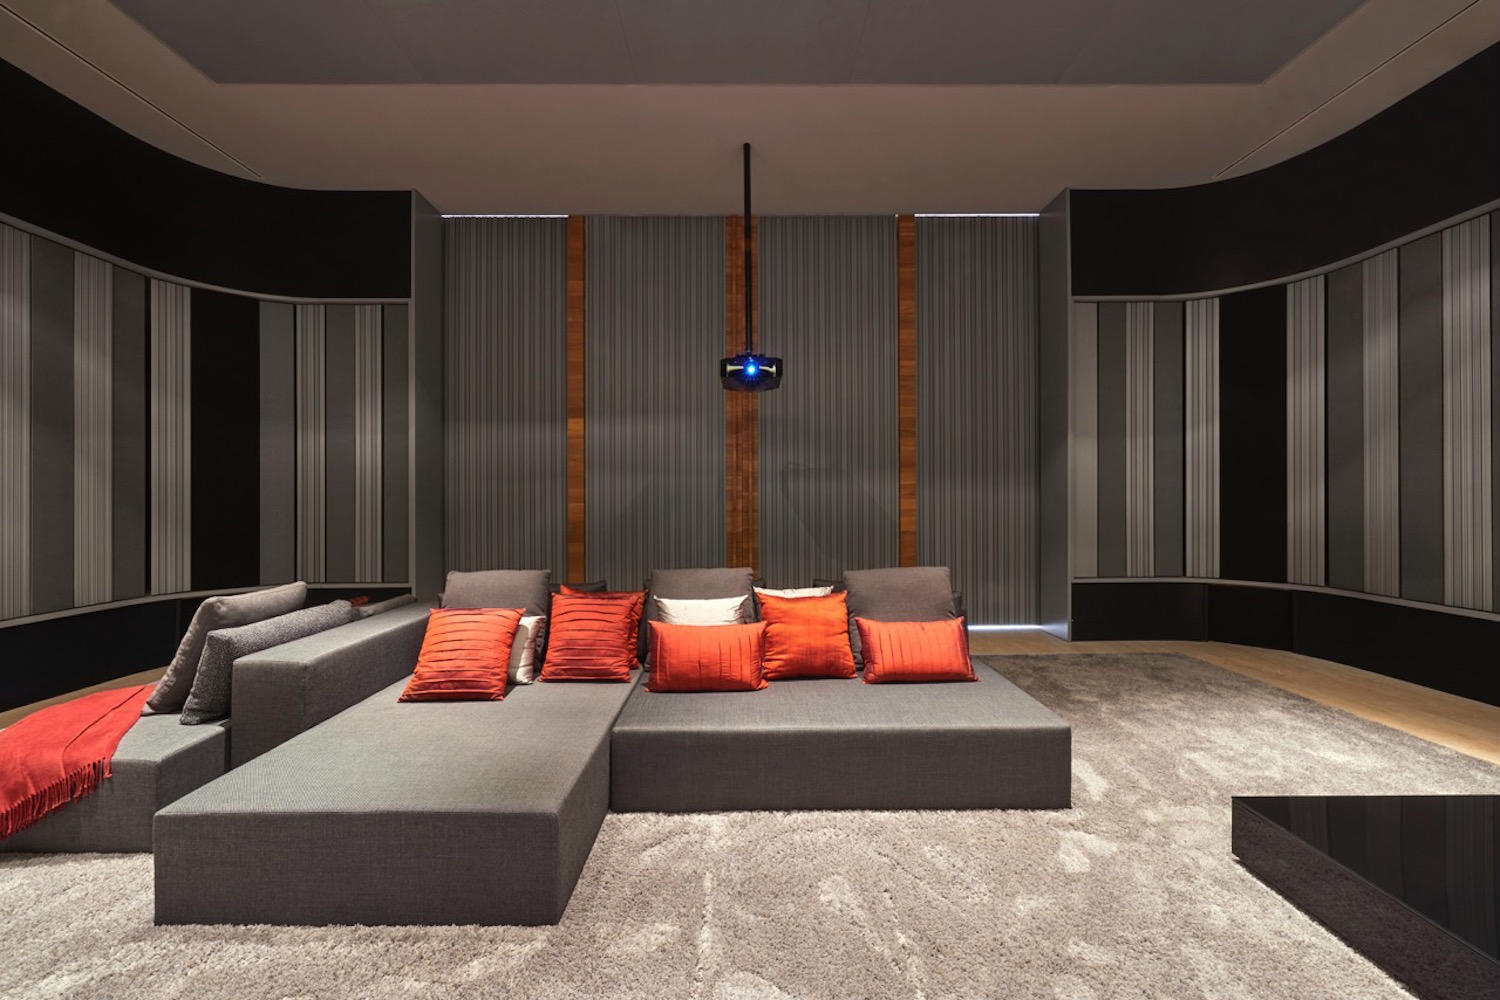 The Ultimate Home Theater seating configuration in Belo Horizonte, Brazil